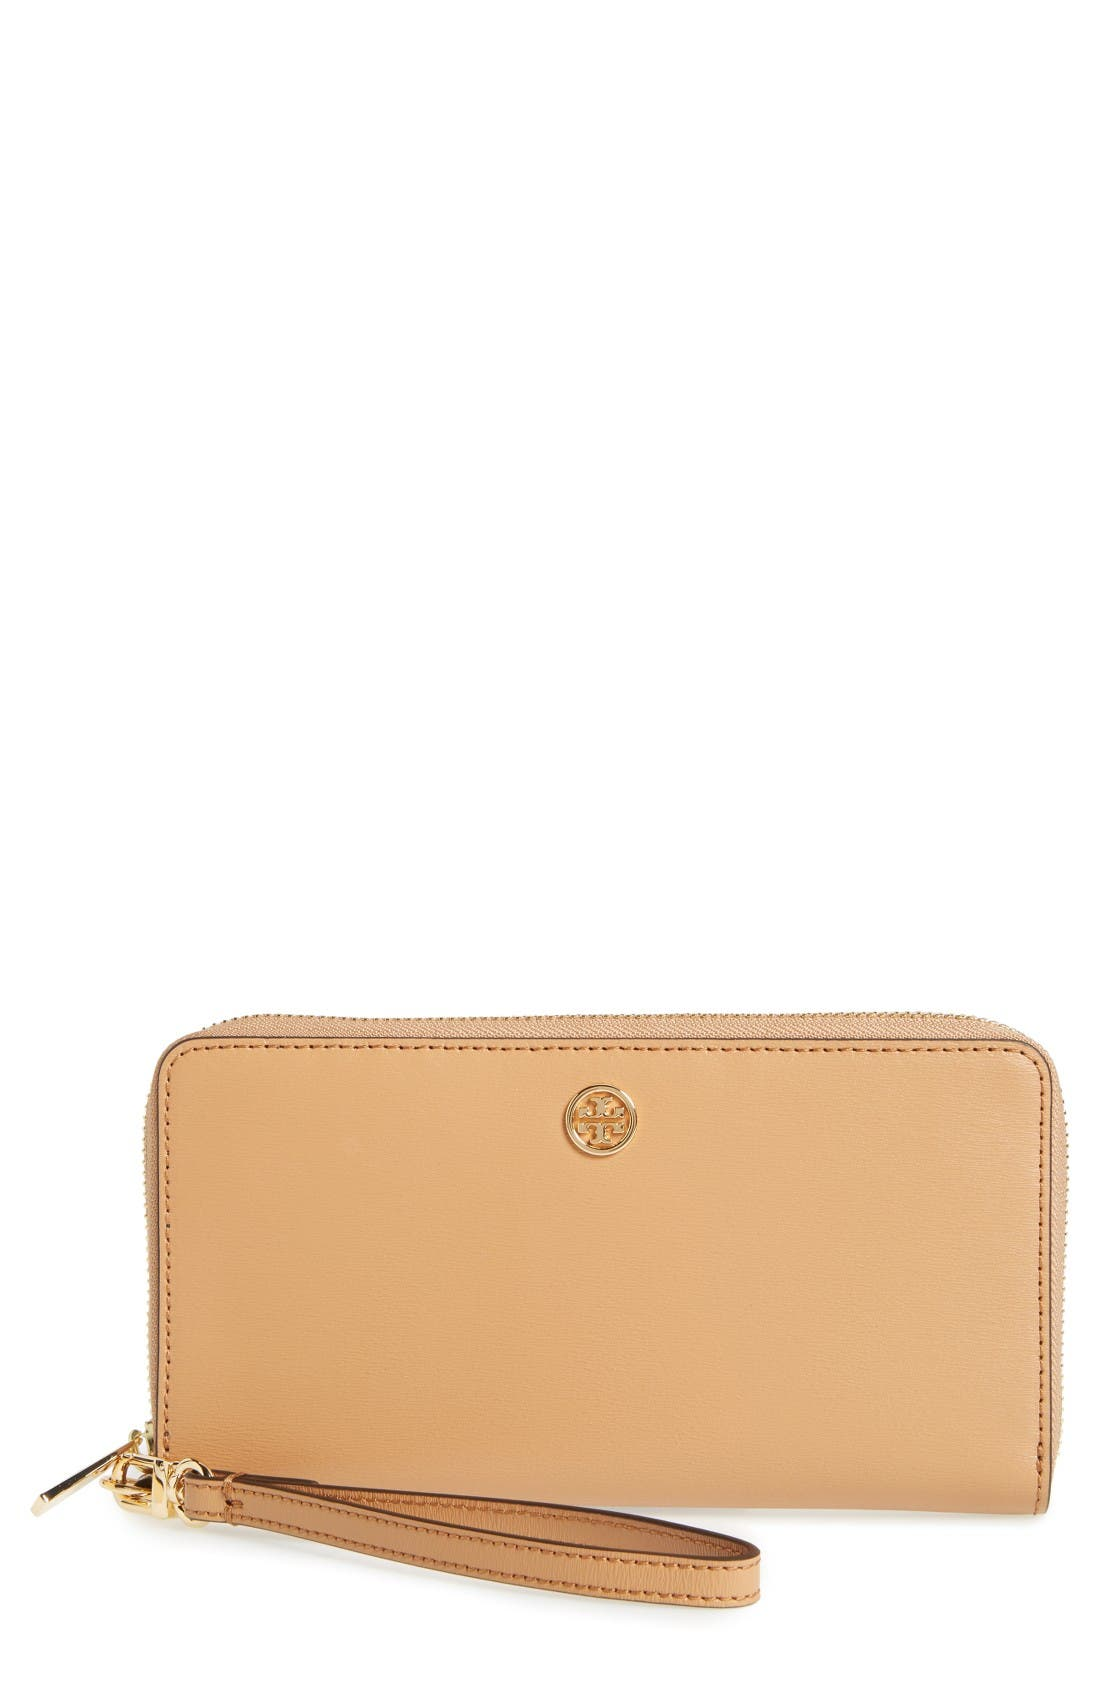 Main Image - Tory Burch Parker Leather Continental Wallet